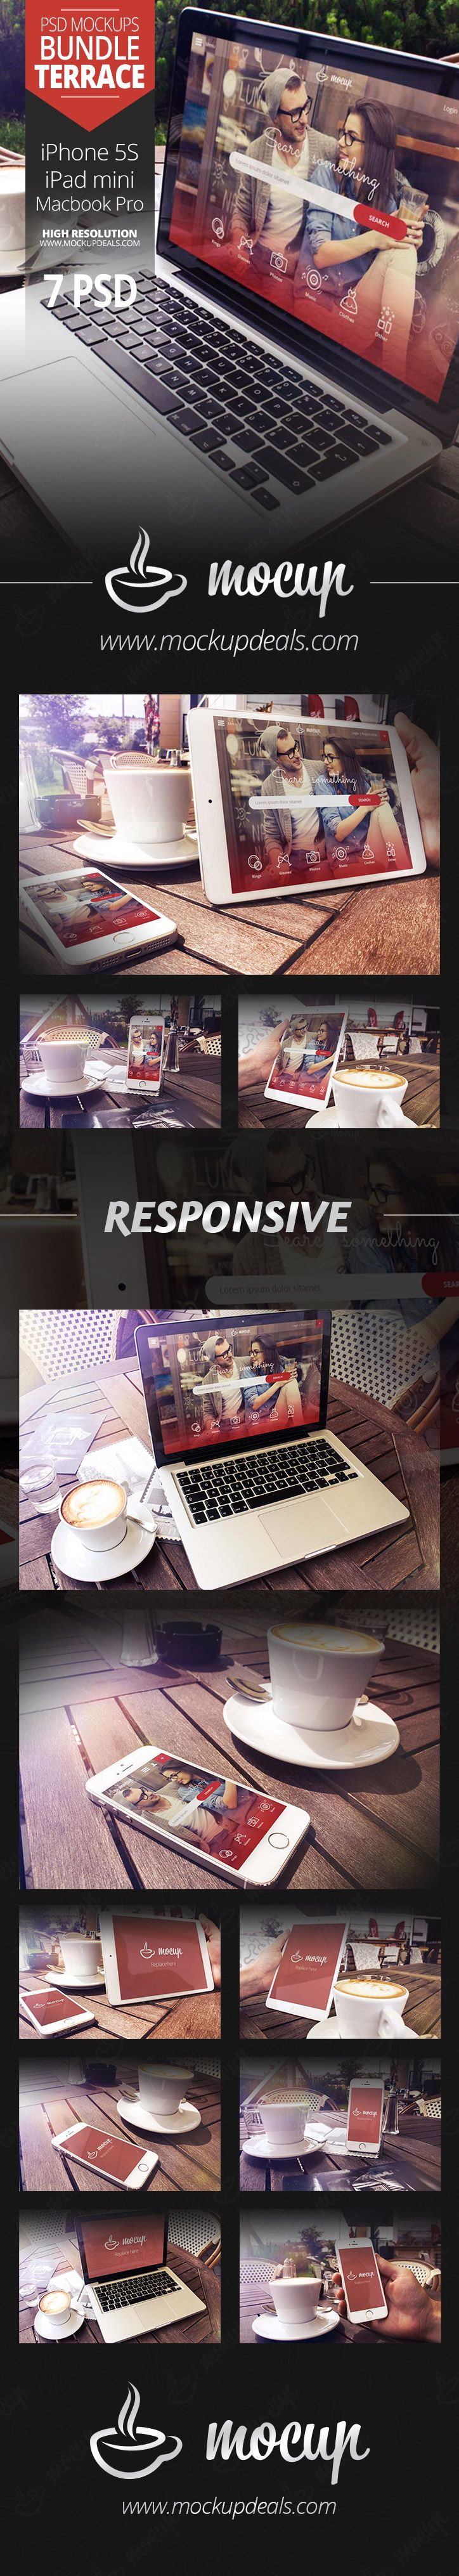 A photorealistic PSD devices (iPhone 5S, iPad mini, Macbook Pro) mockups set to present your responsive website or application design.